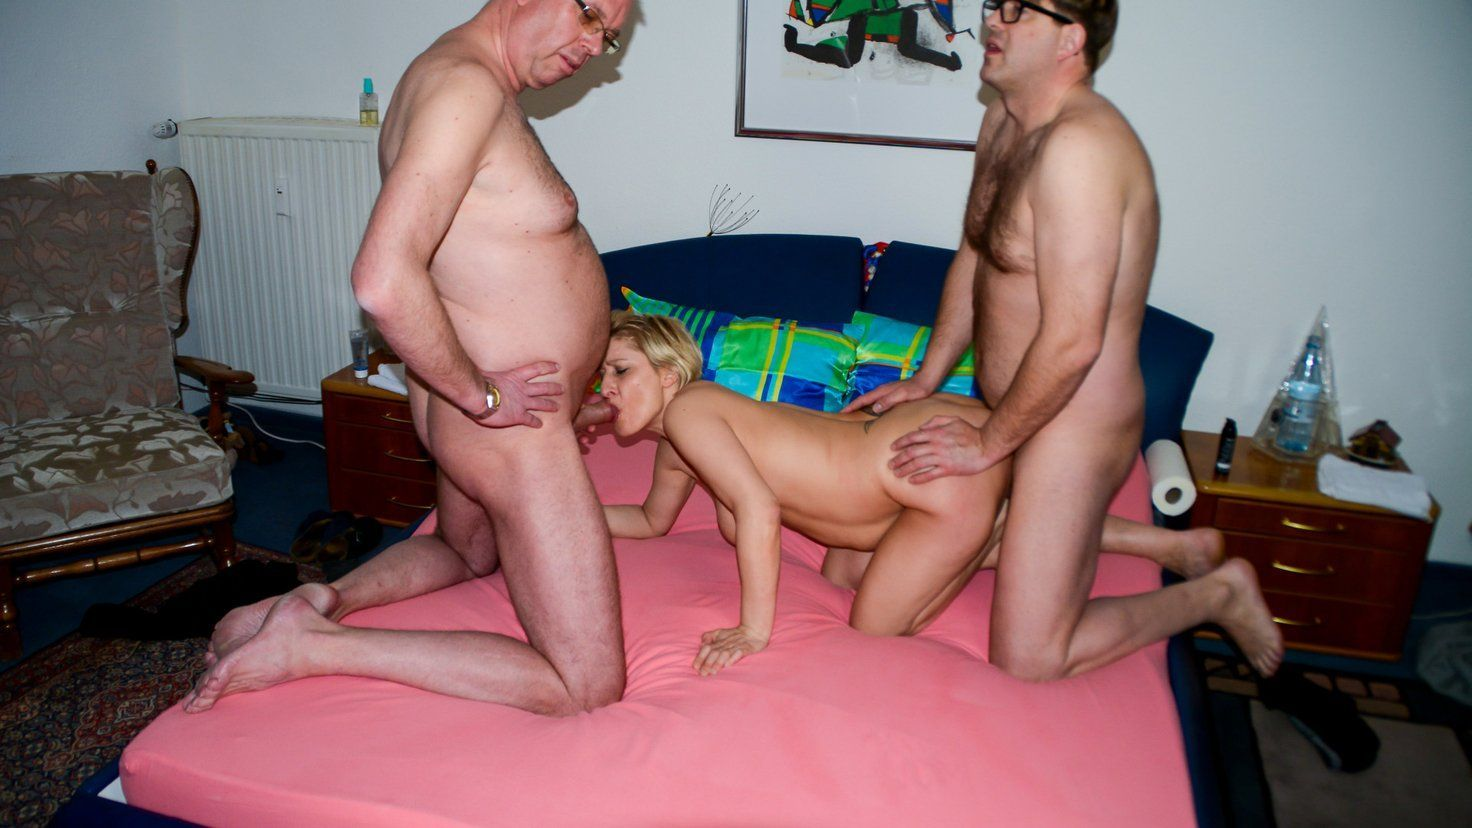 Sabertooth recommend best of everything sexual mmf threesome